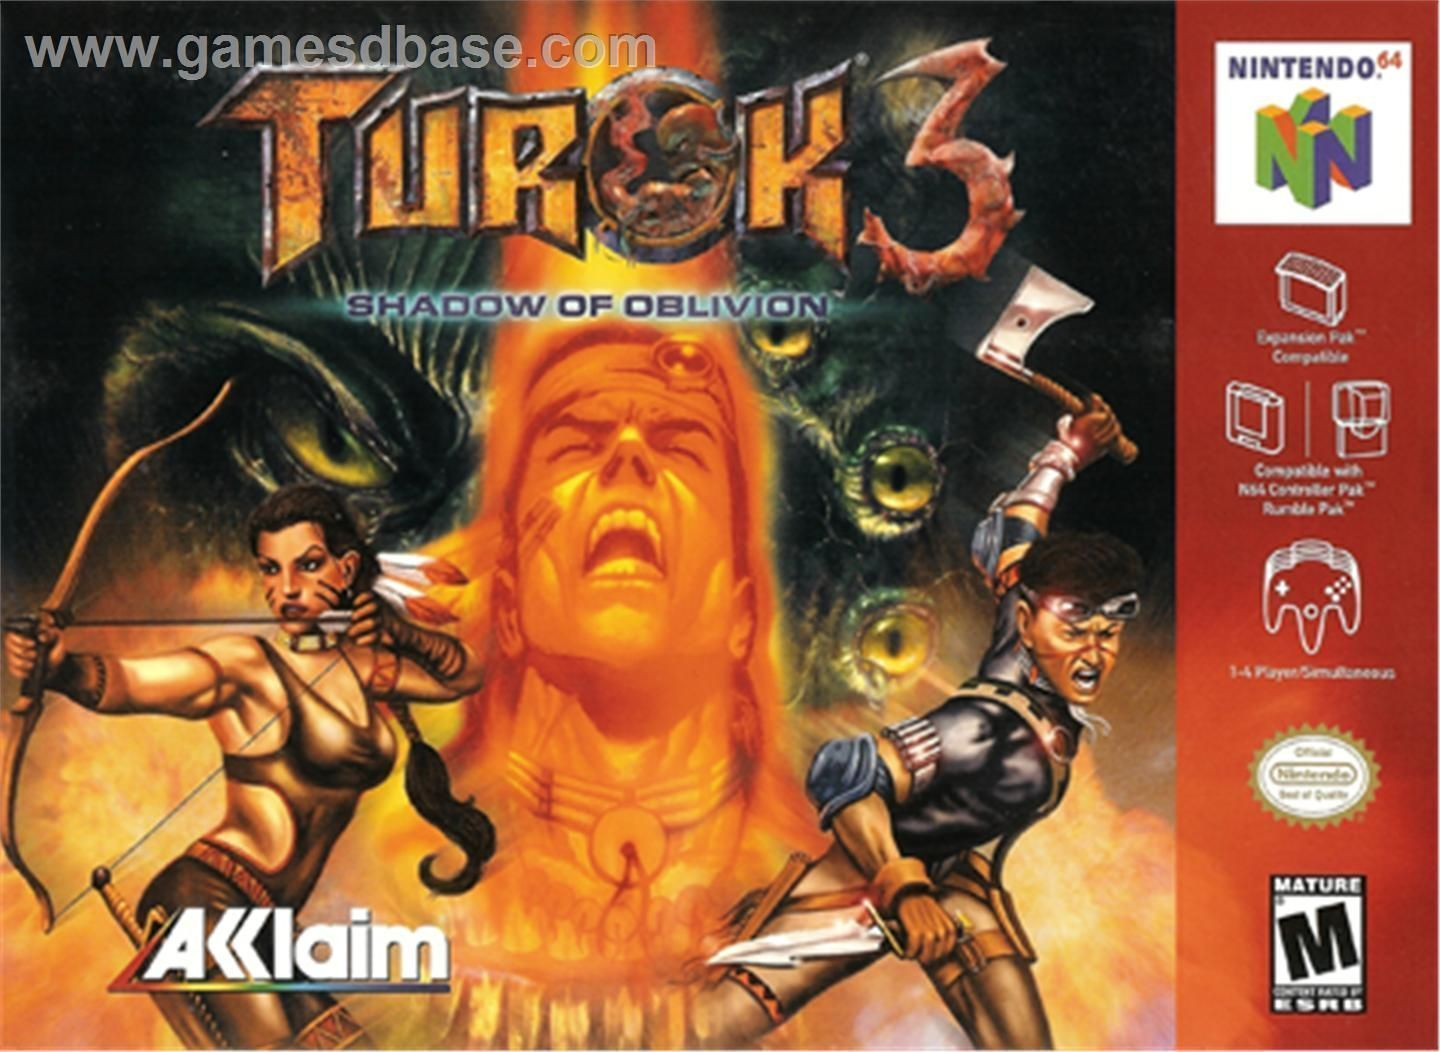 """Turok 3: Shadow of Oblivion""-cover game/top game n64"